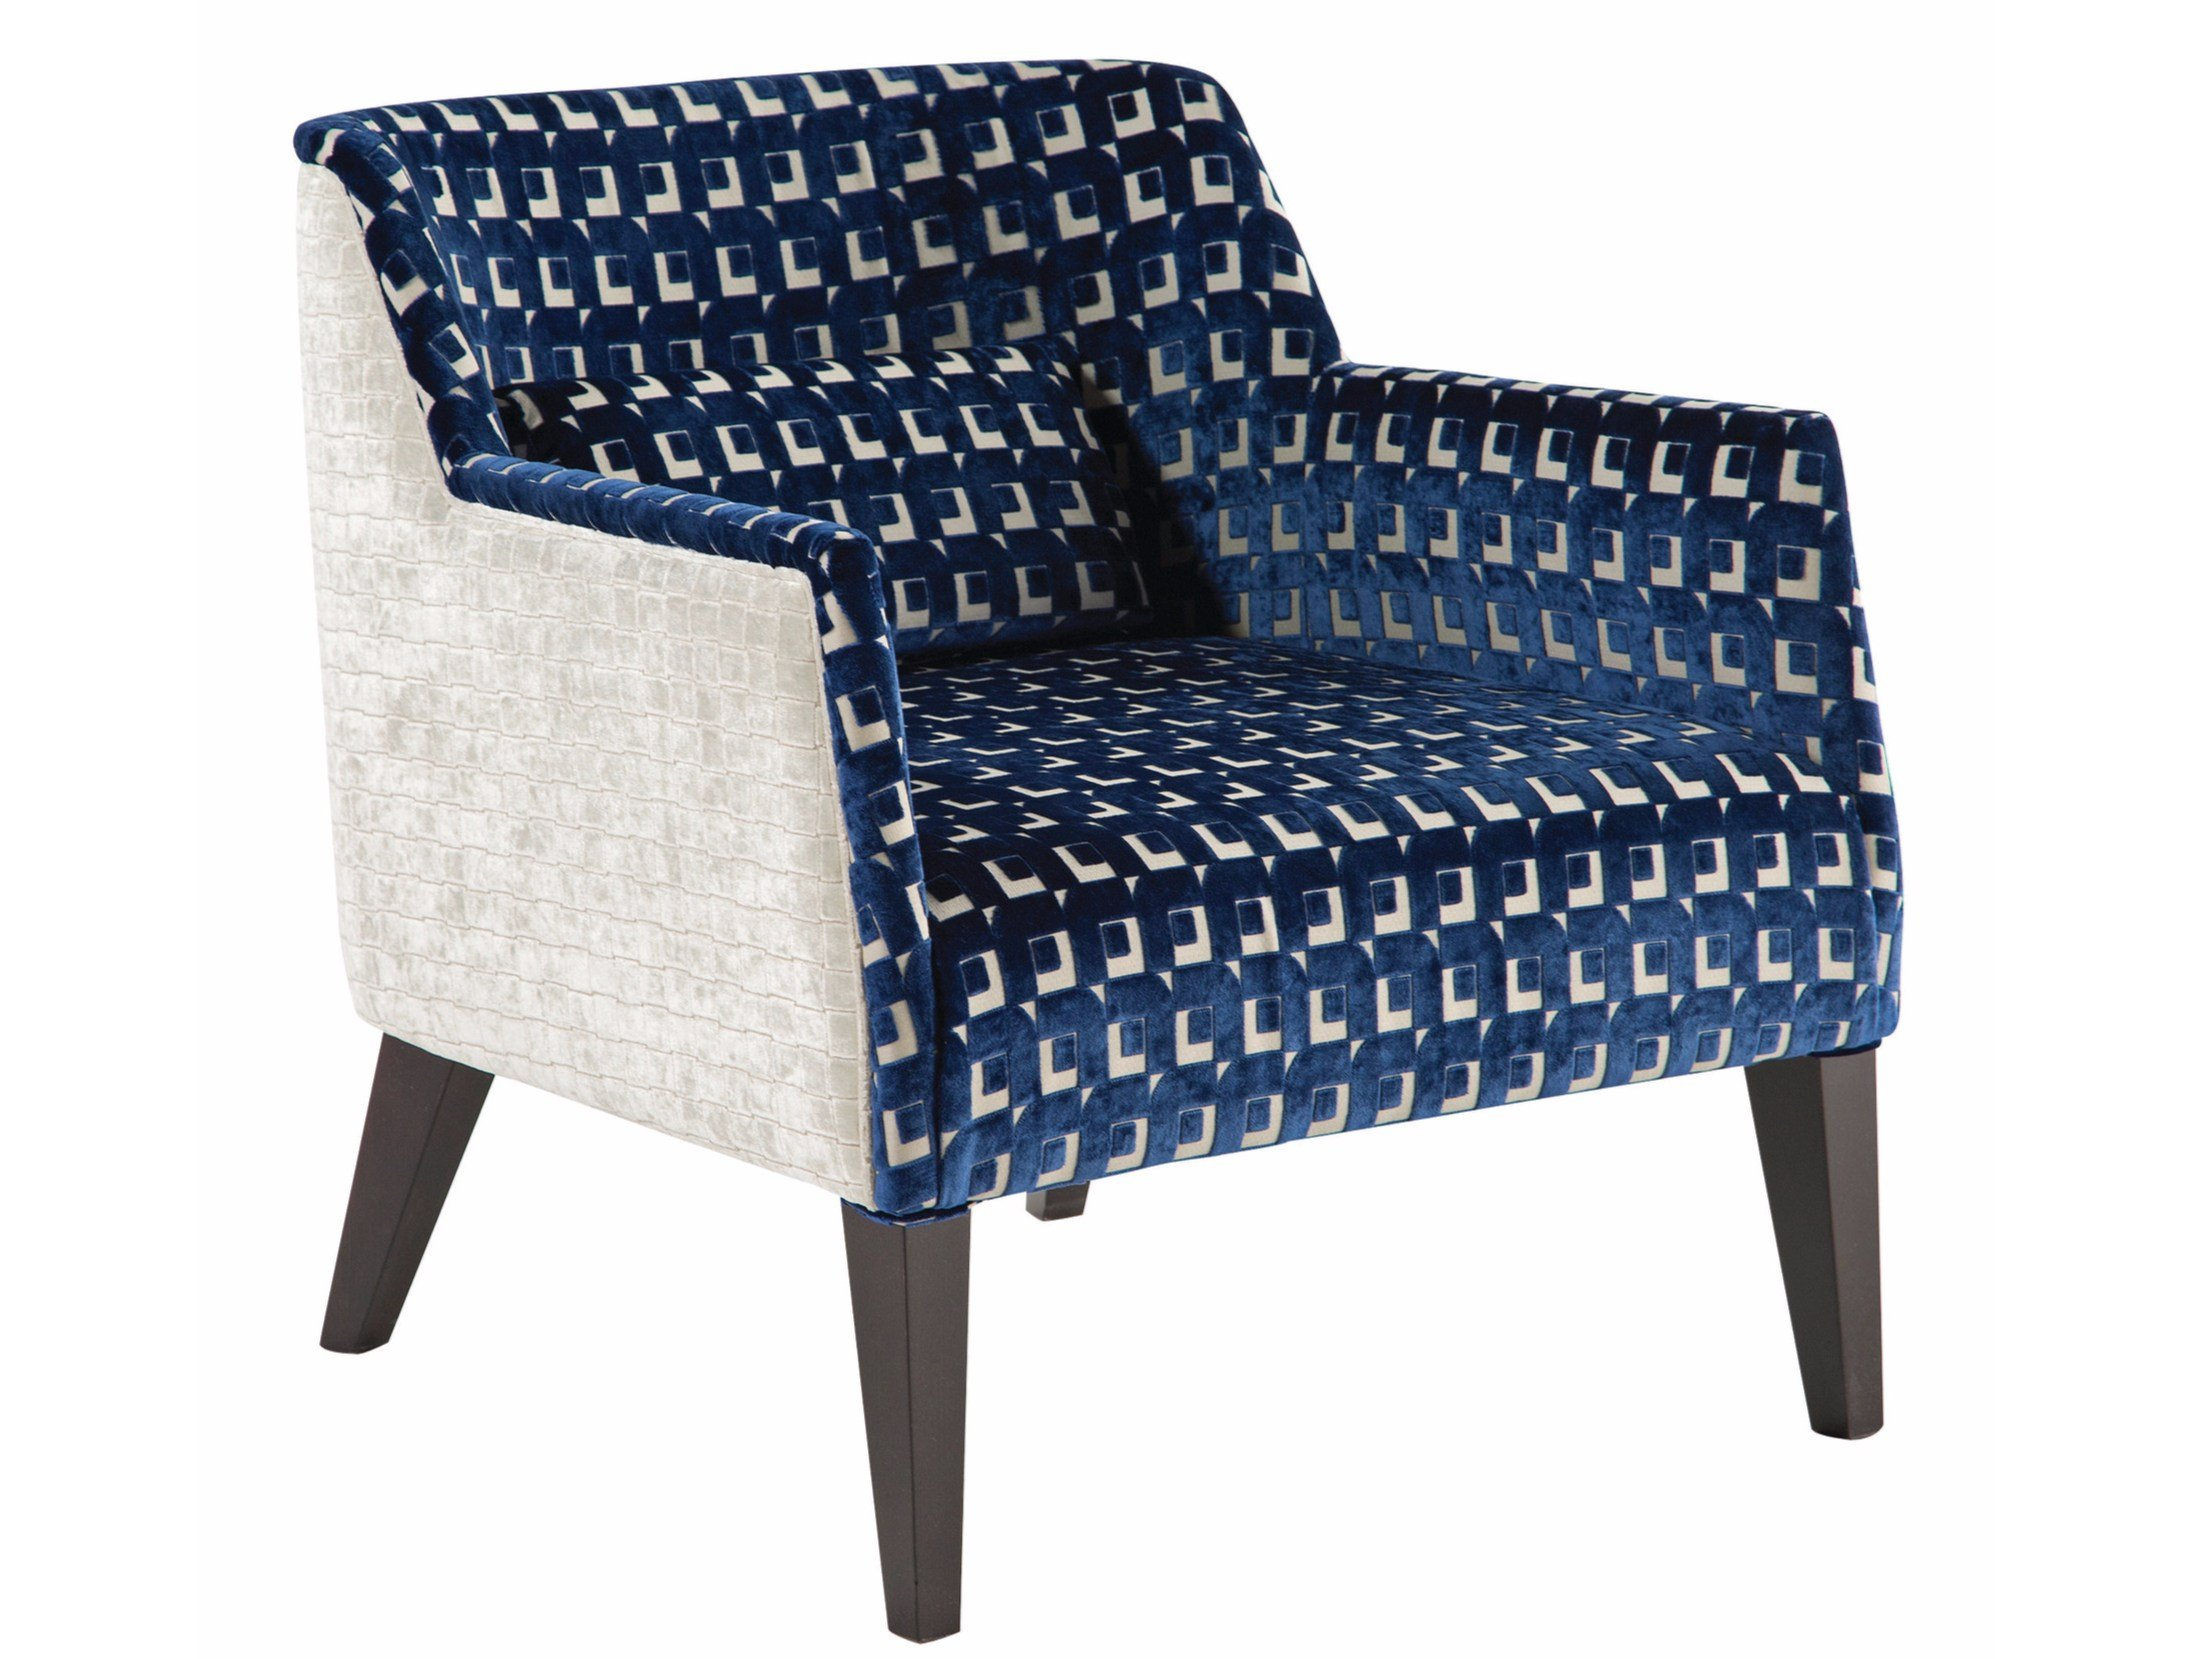 Good Fabulous Great Roche Bobois Poltrone With Roche Bobois Poltrone With Roche  Bobois Poltrone.